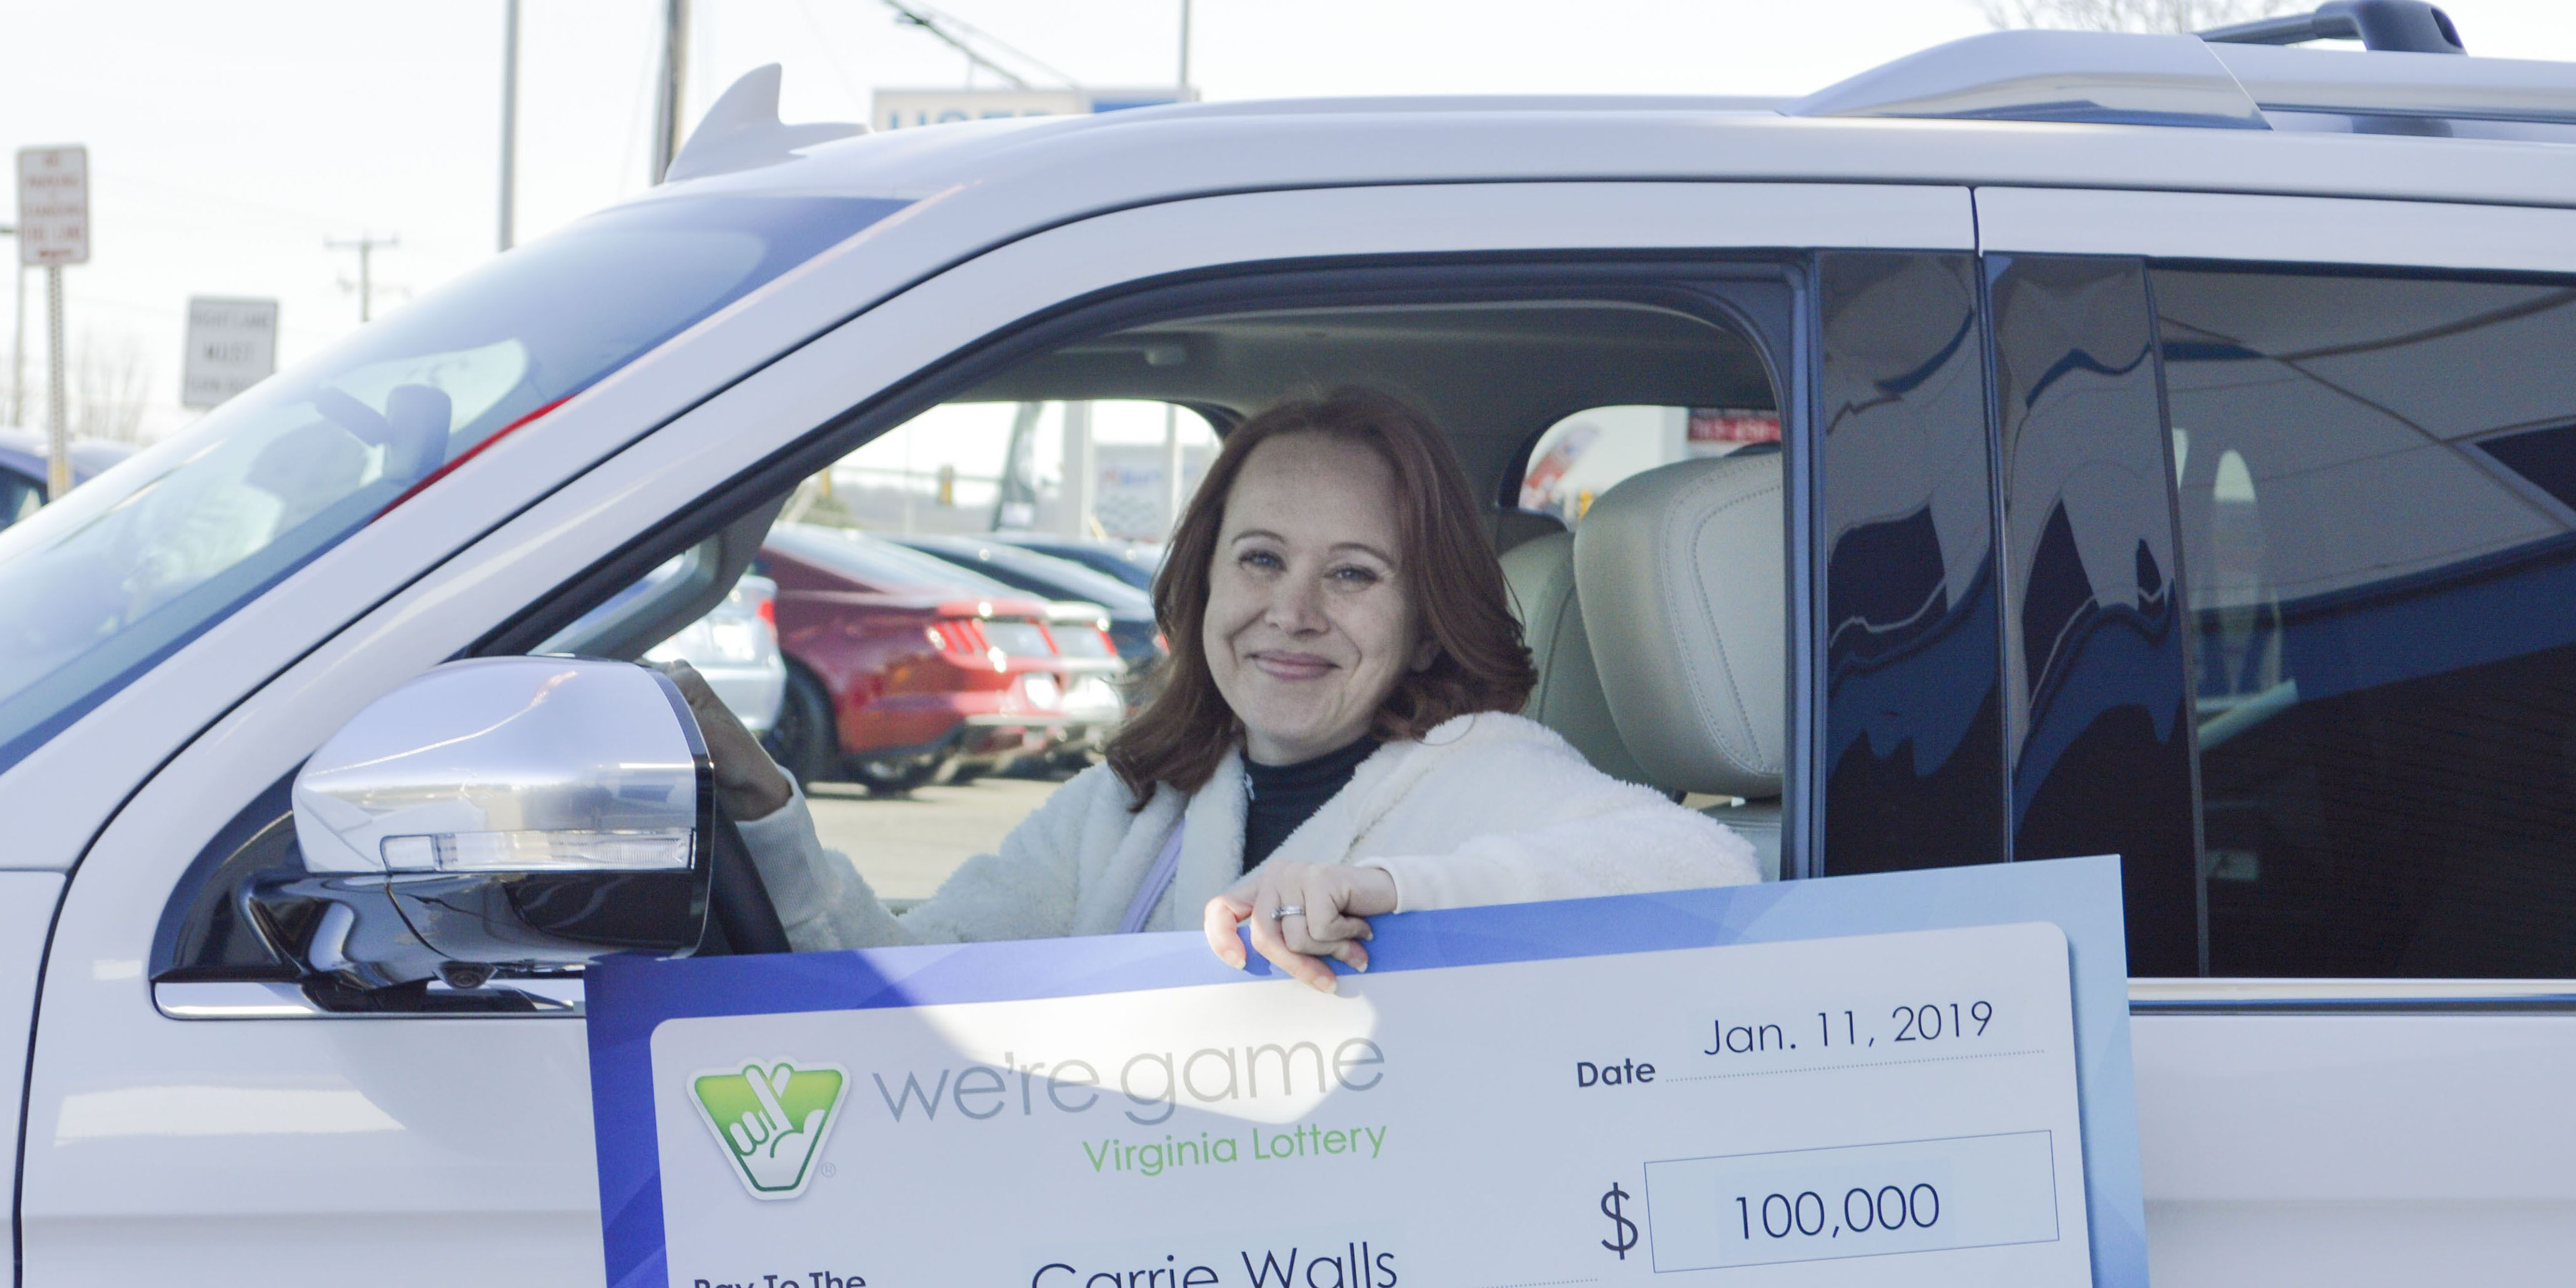 Spouse of furloughed government worker wins $100K, SUV lottery prizes